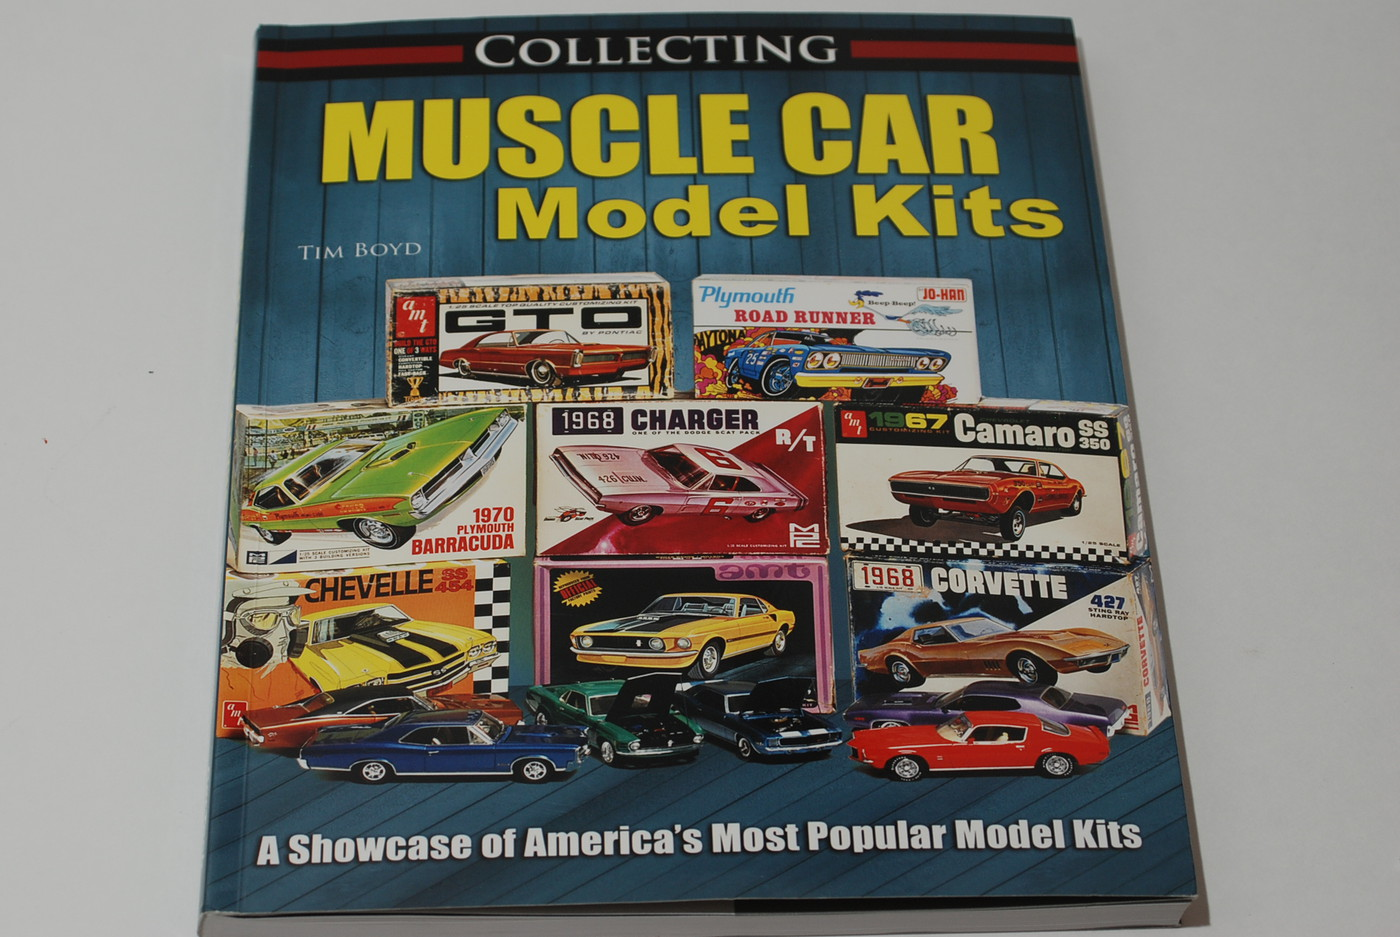 The Backstory Behind The New Book Collecting Muscle Car Model Kits